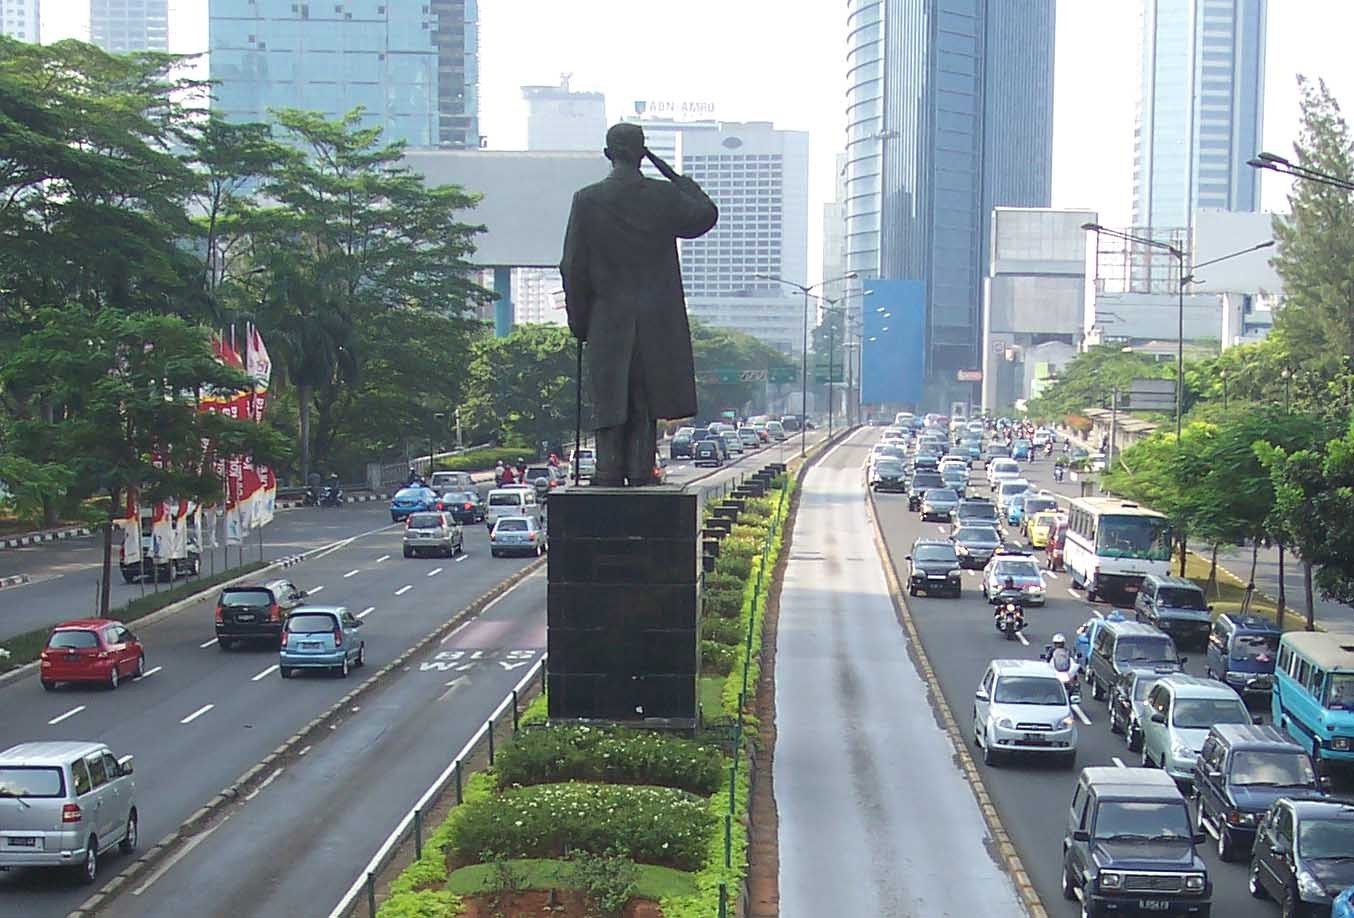 Jakarta images jakarta,the capital city of indonesia HD wallpaper and background photos